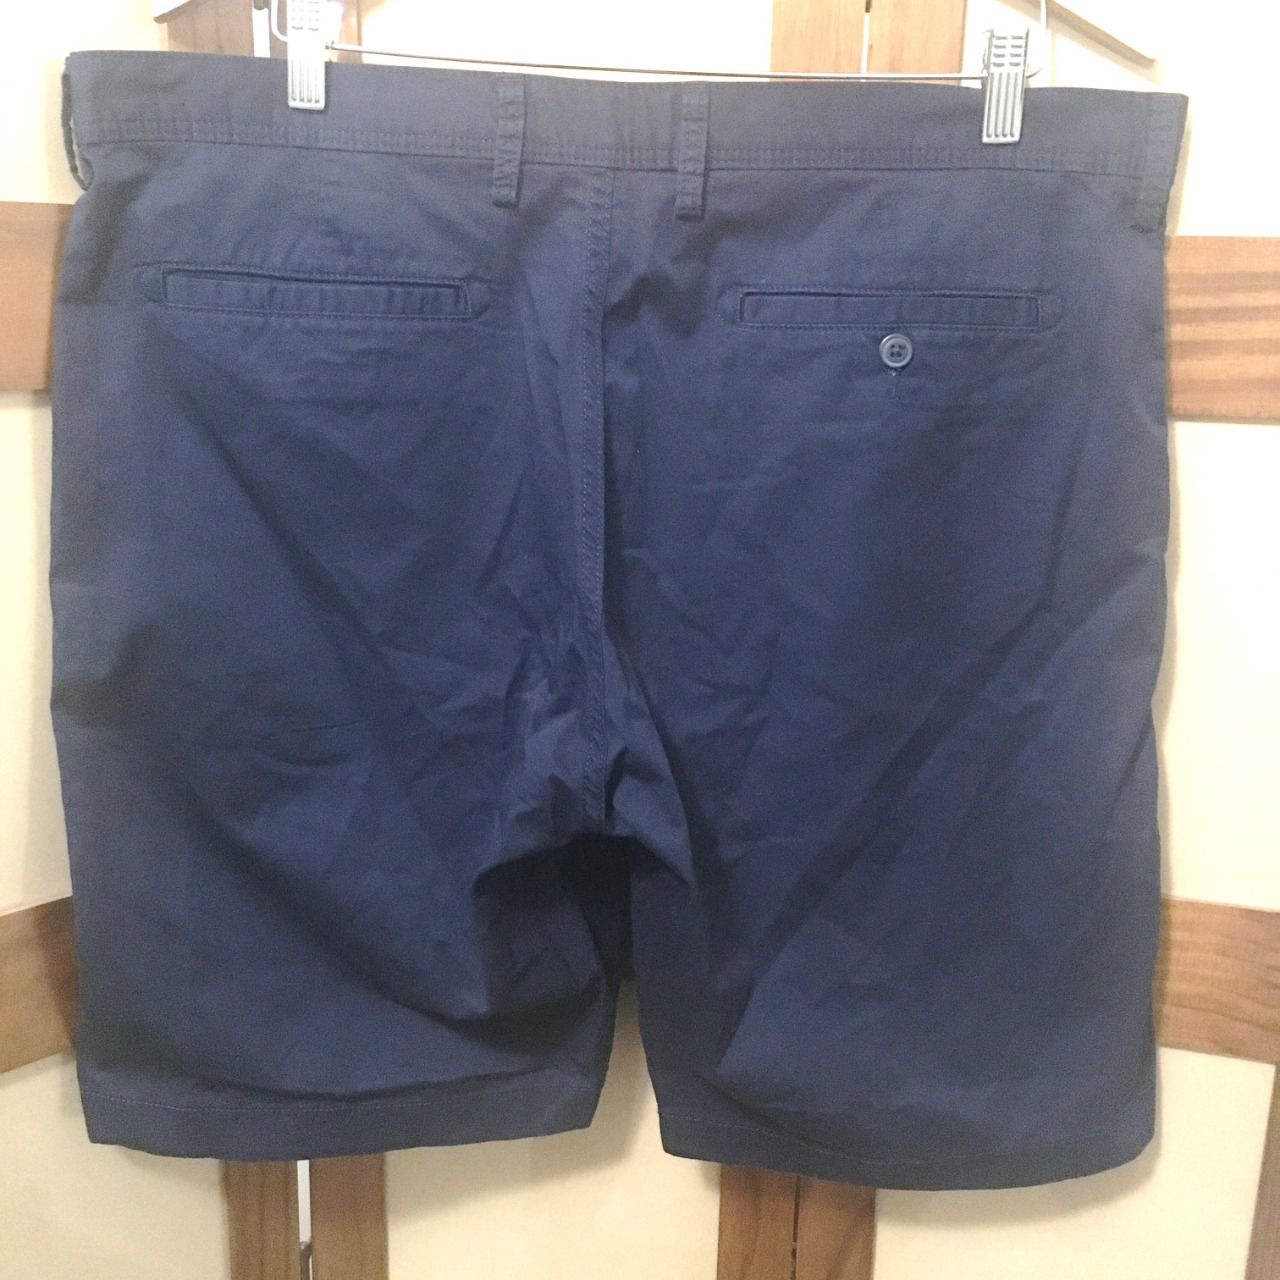 Country Road Mens  Size 36 Navy Blue Stretch Chino Shorts BNWT